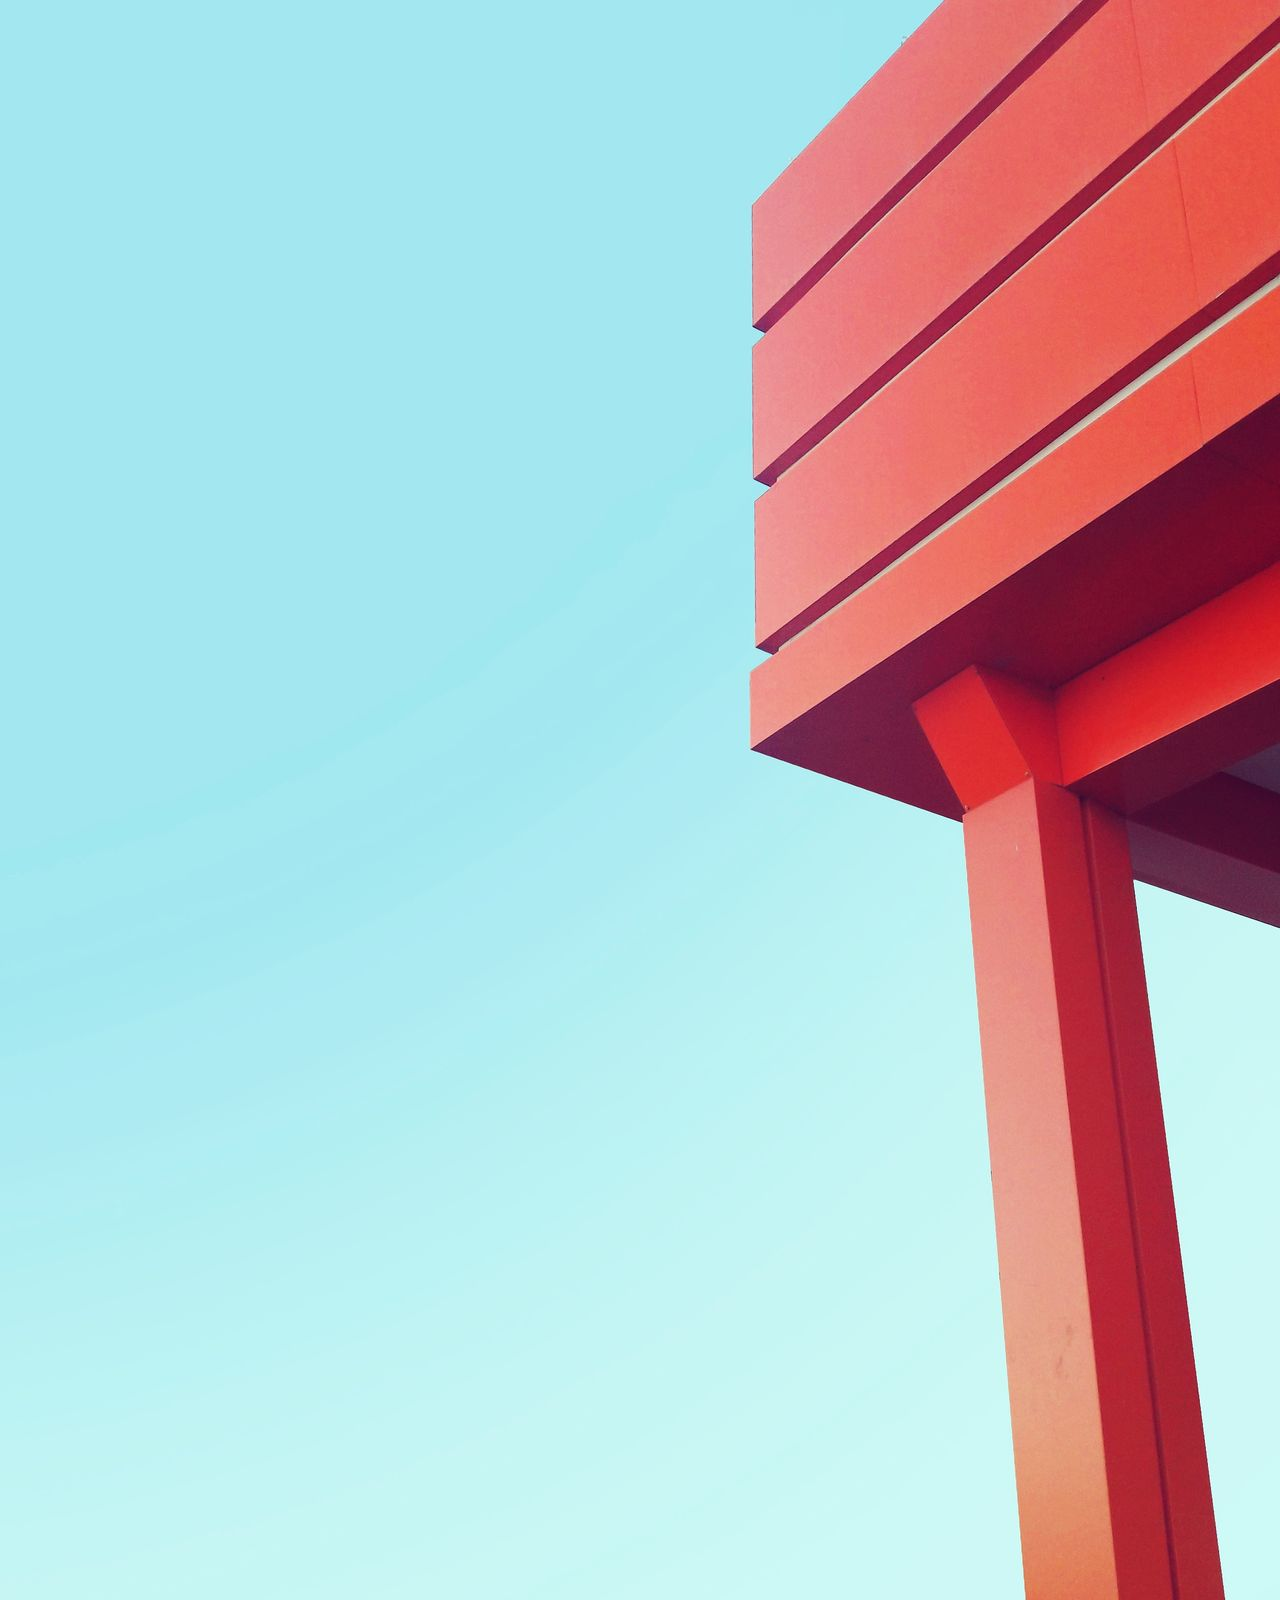 EyeEm Selects Architecture day Red no people Clear sky Orange summer 2017 Architecture minimalism minimal